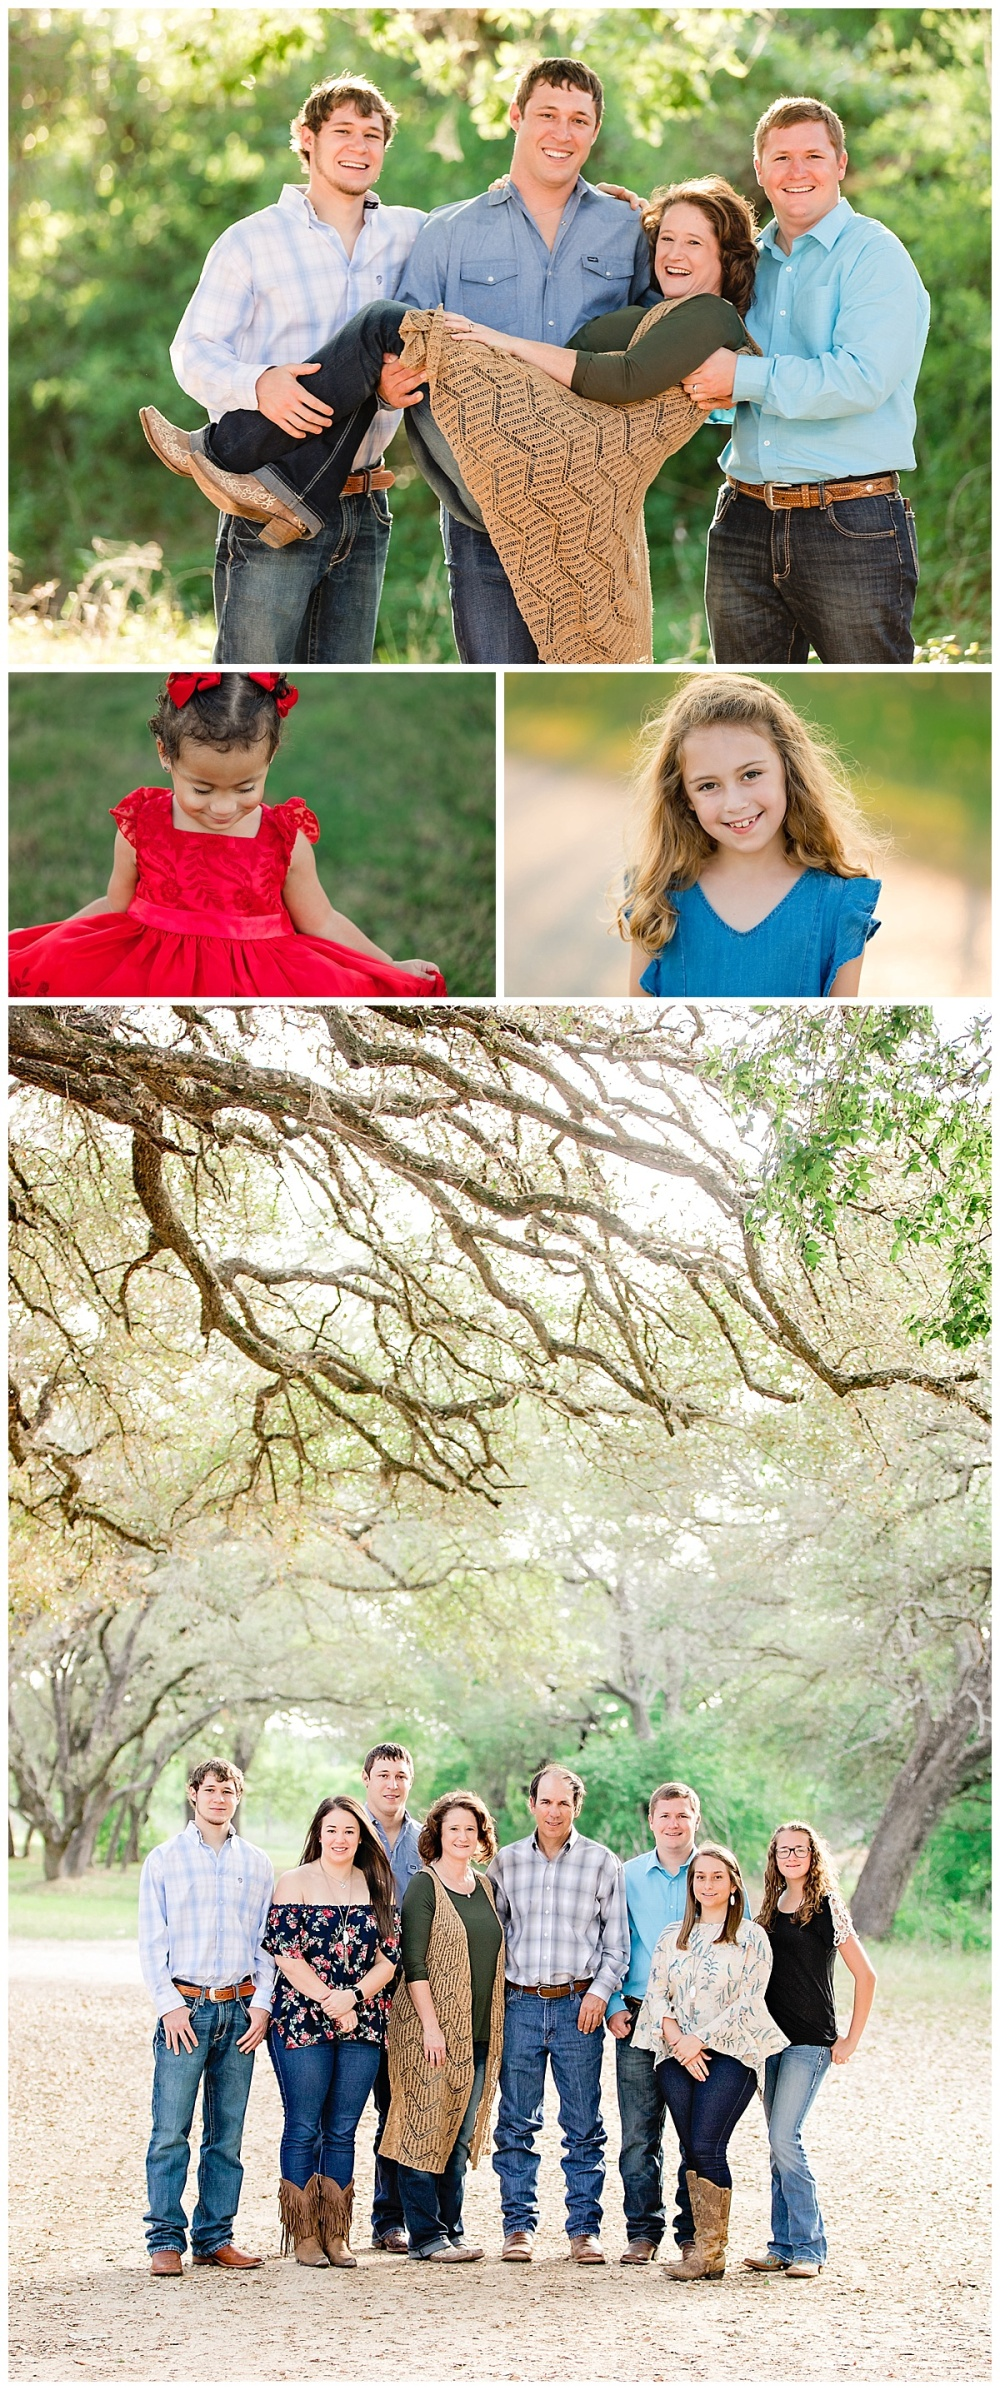 Carly-Barton-Photography-San-Antonio-Texas-Hill-Country-Fall-Heubaum_0139